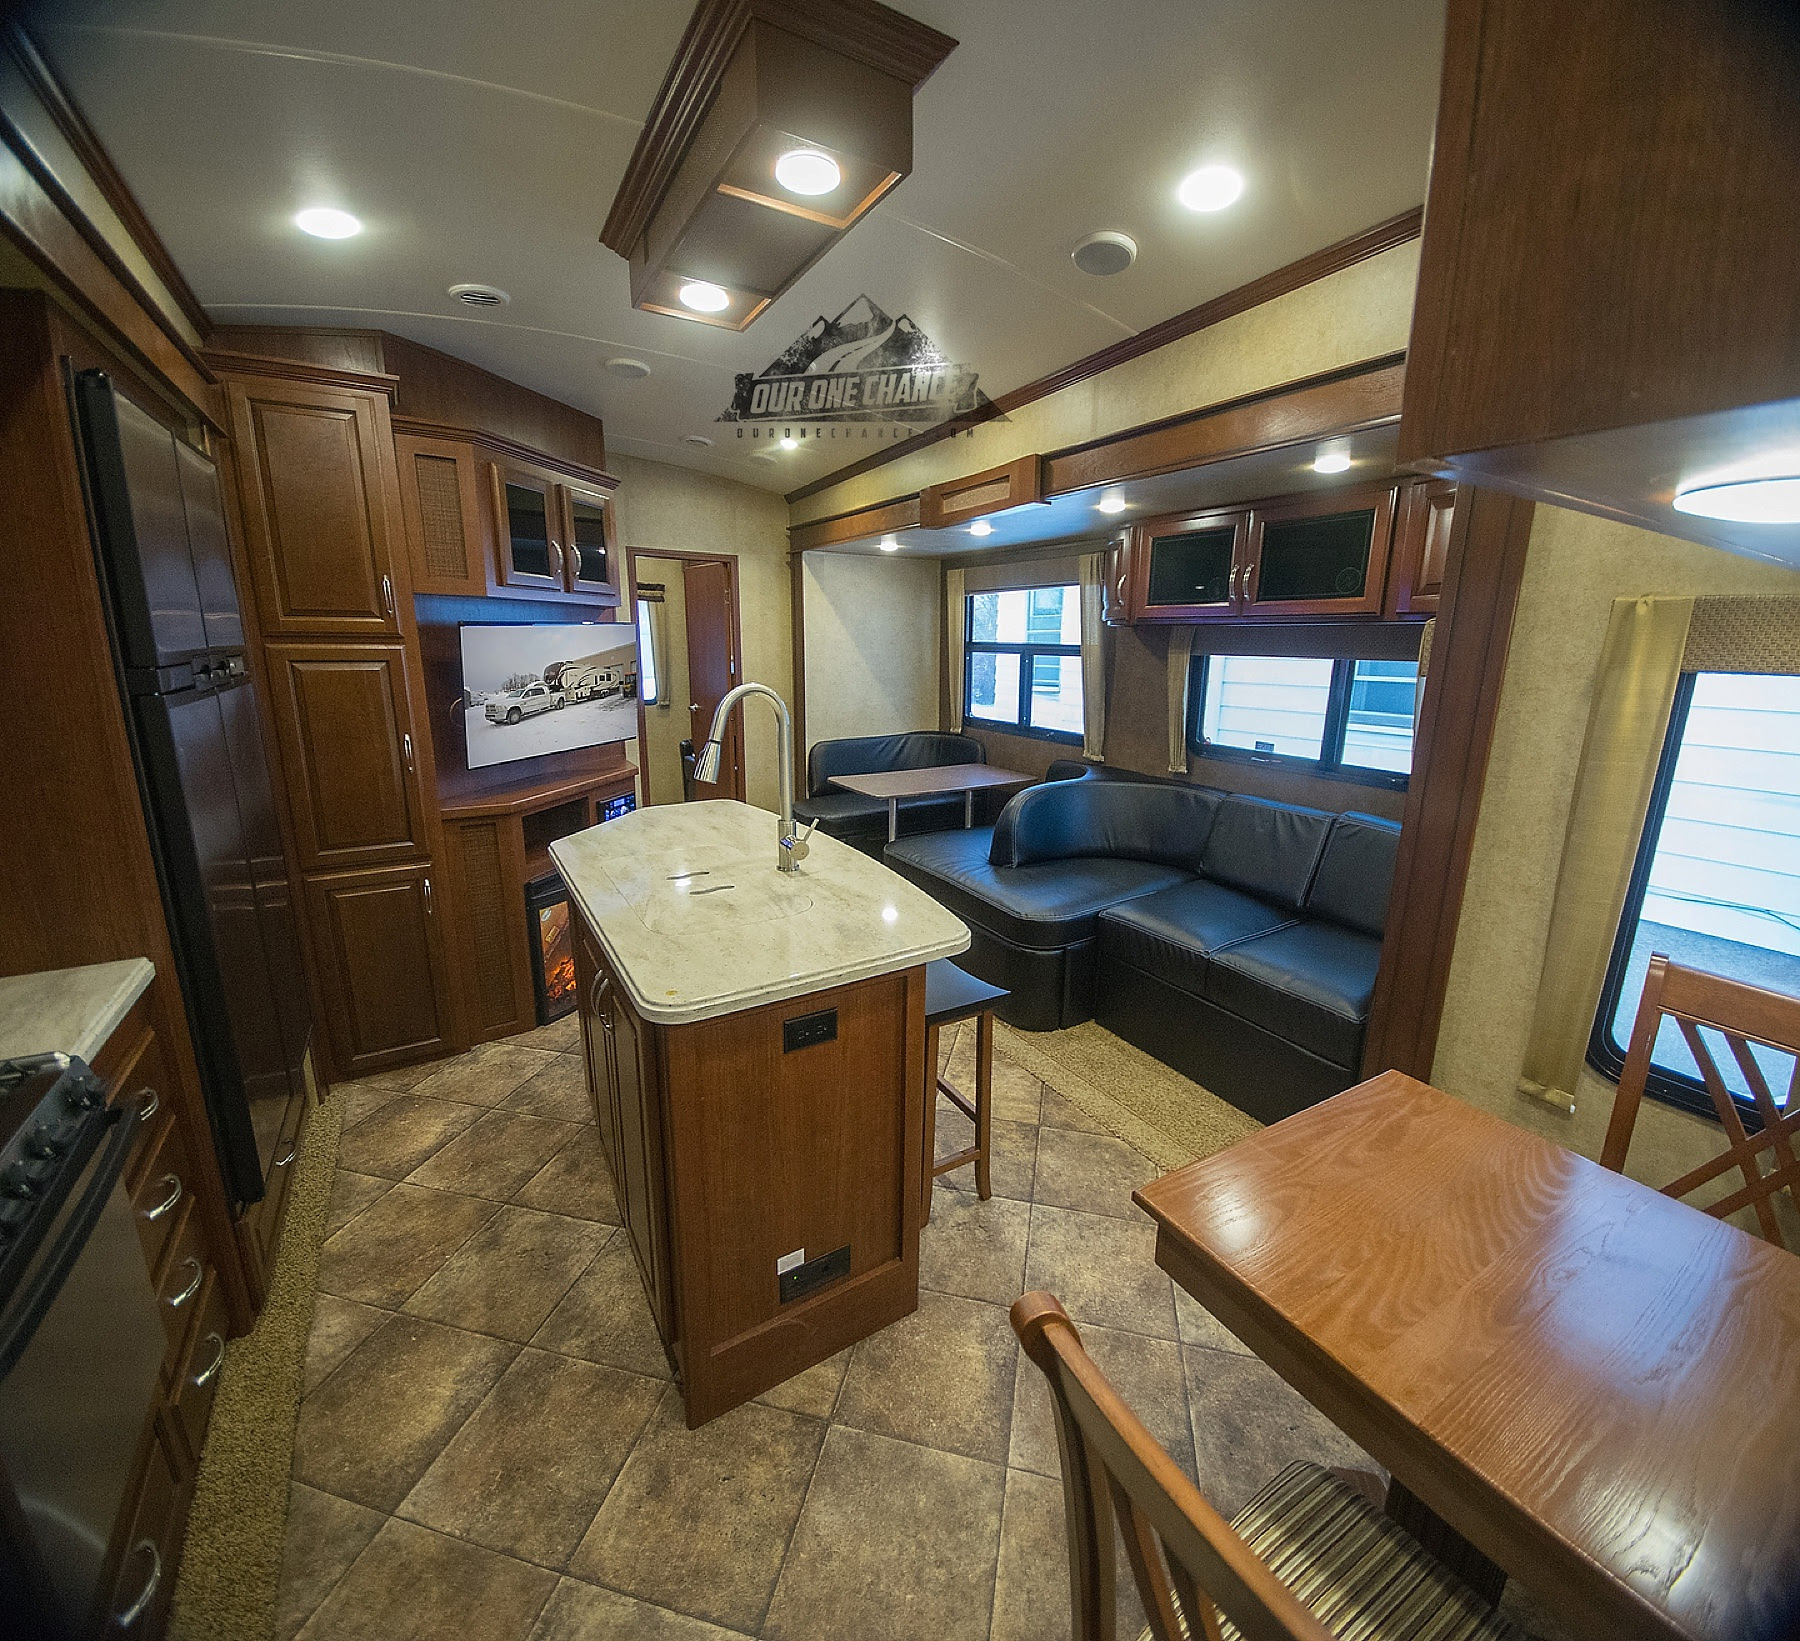 Rv Remodel Living Room Update Evergreen Bay Hill 385bh